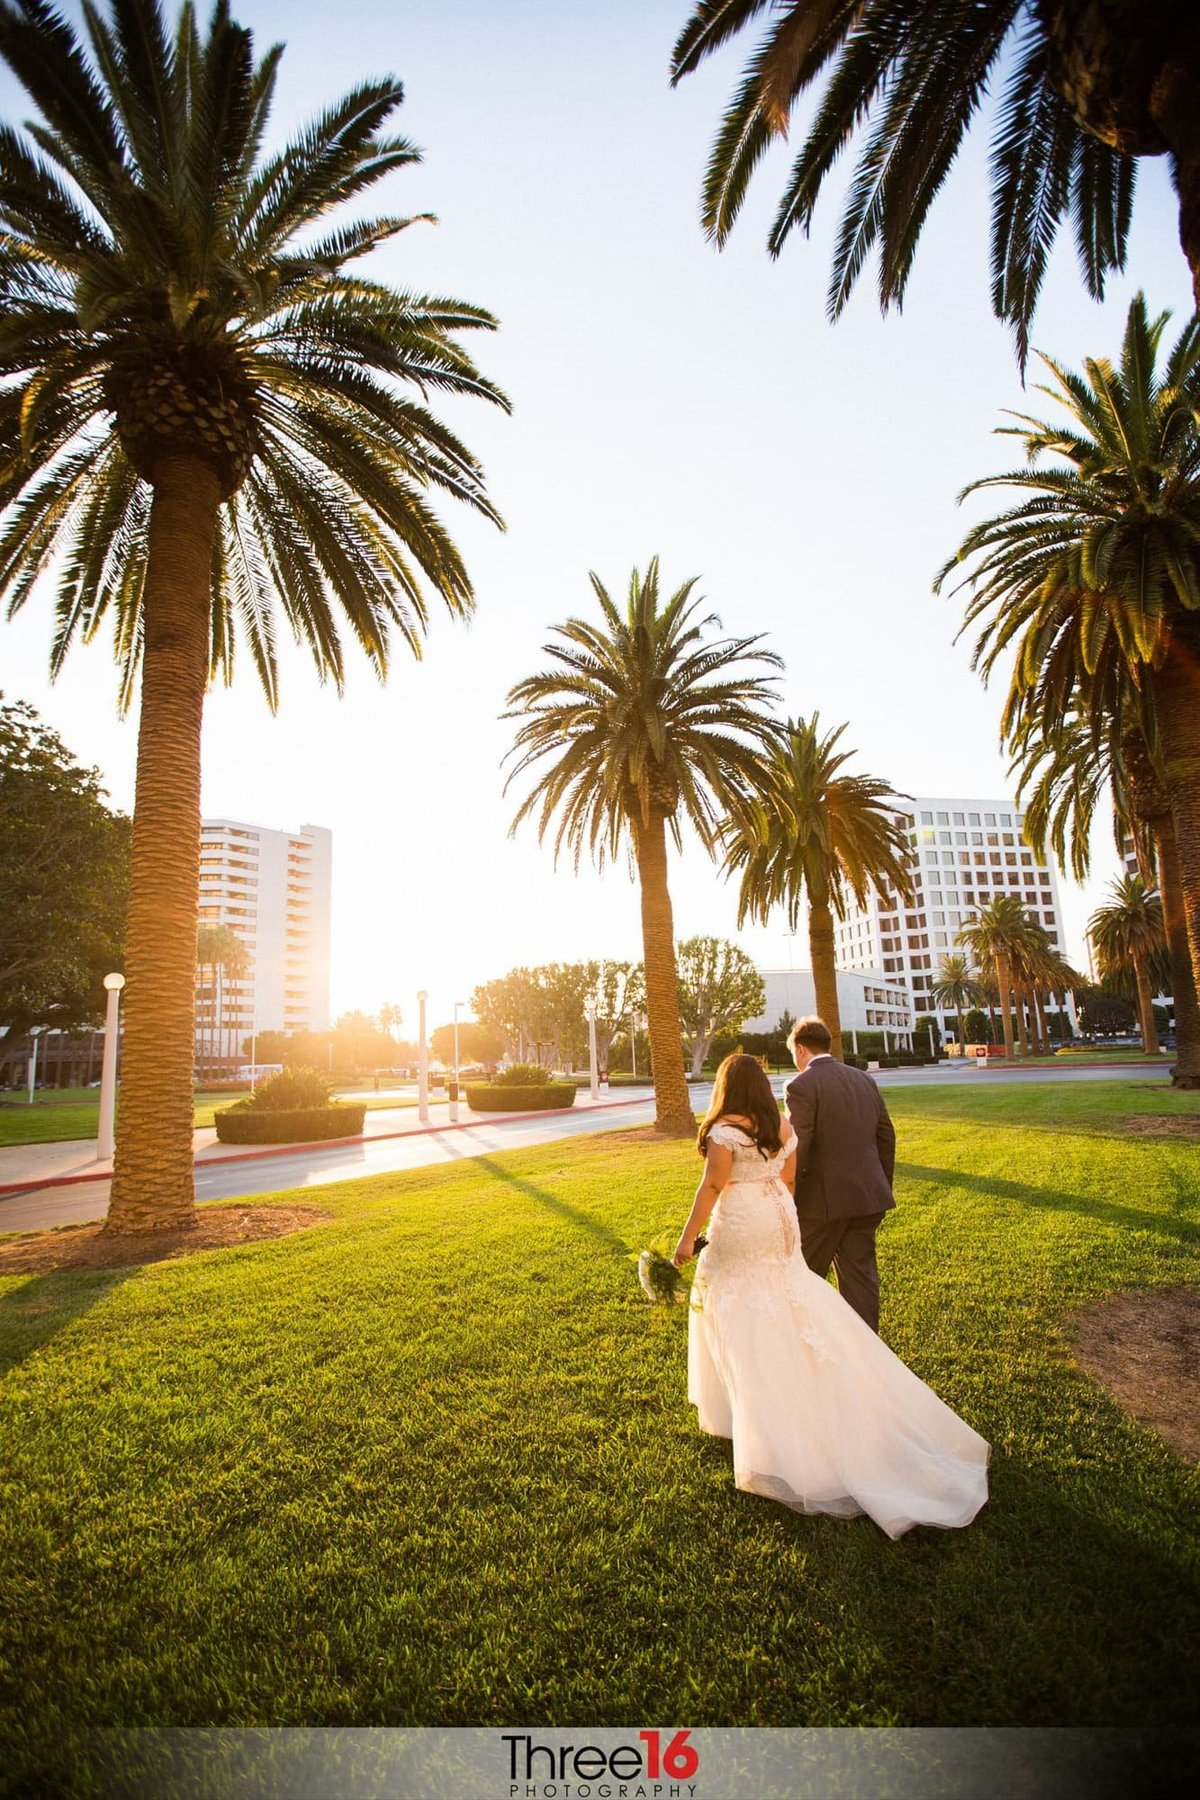 Weddings at Hotel Irvine Photographer